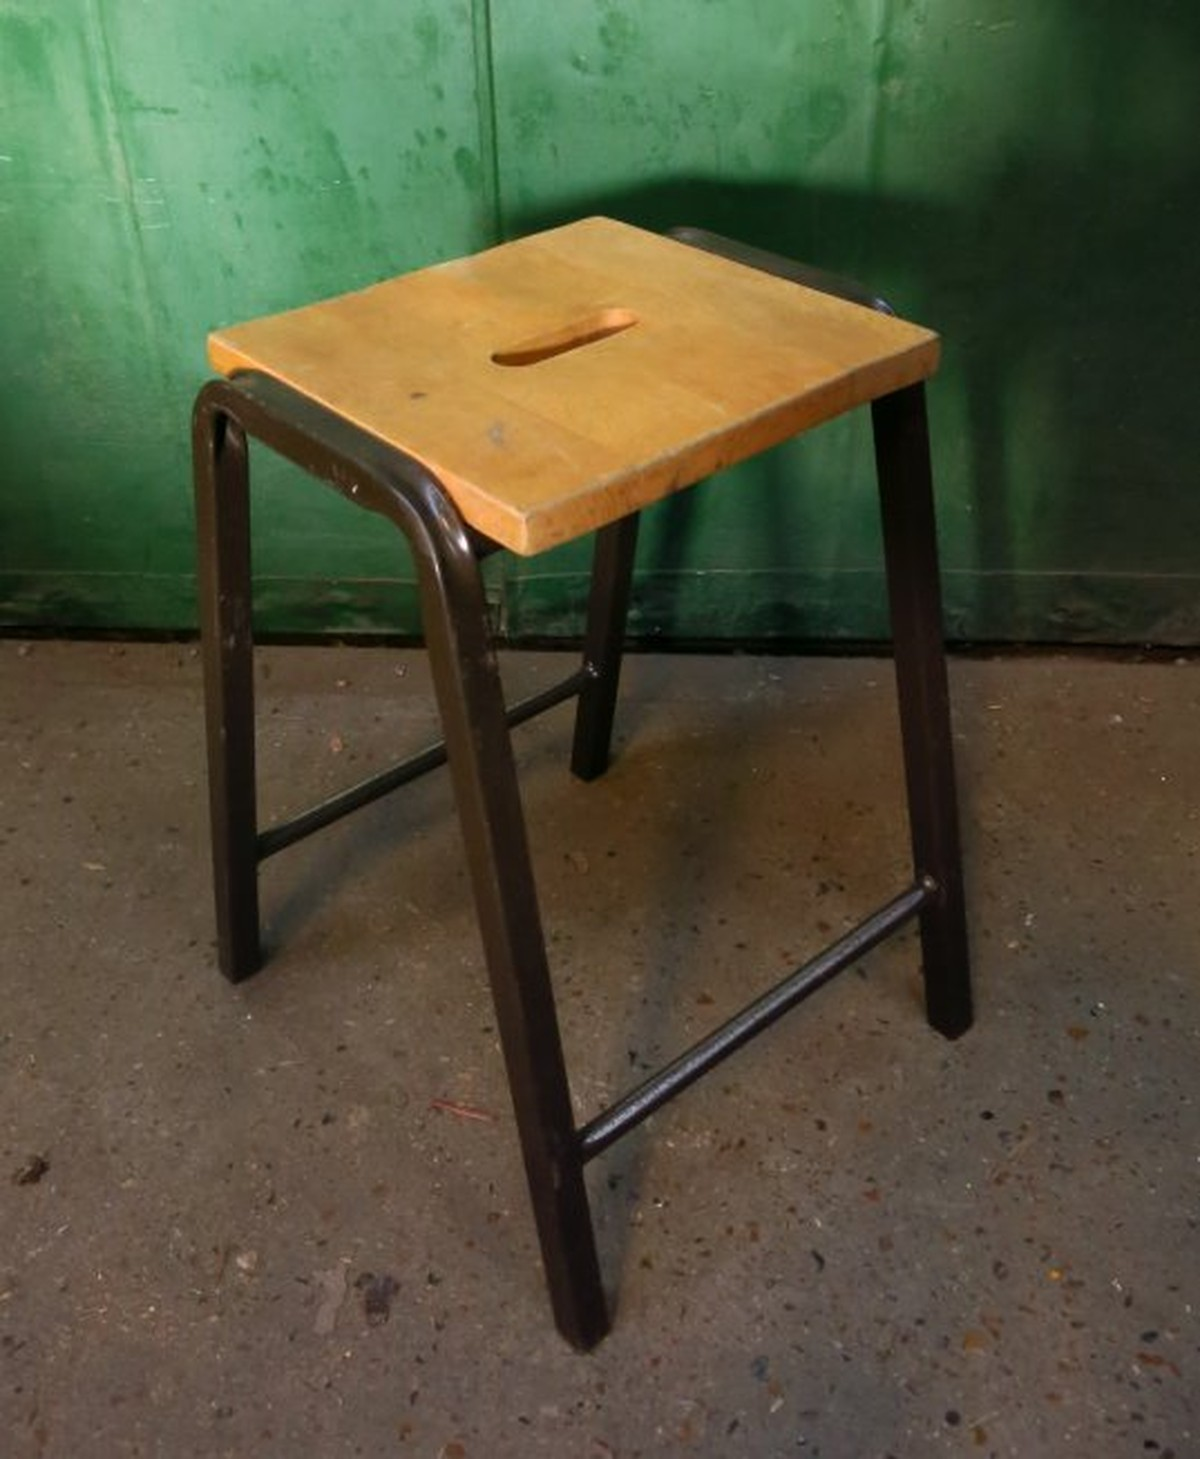 Secondhand Vintage And Reclaimed Industrial Reclaimed Furniture 3x Stools Pressed And